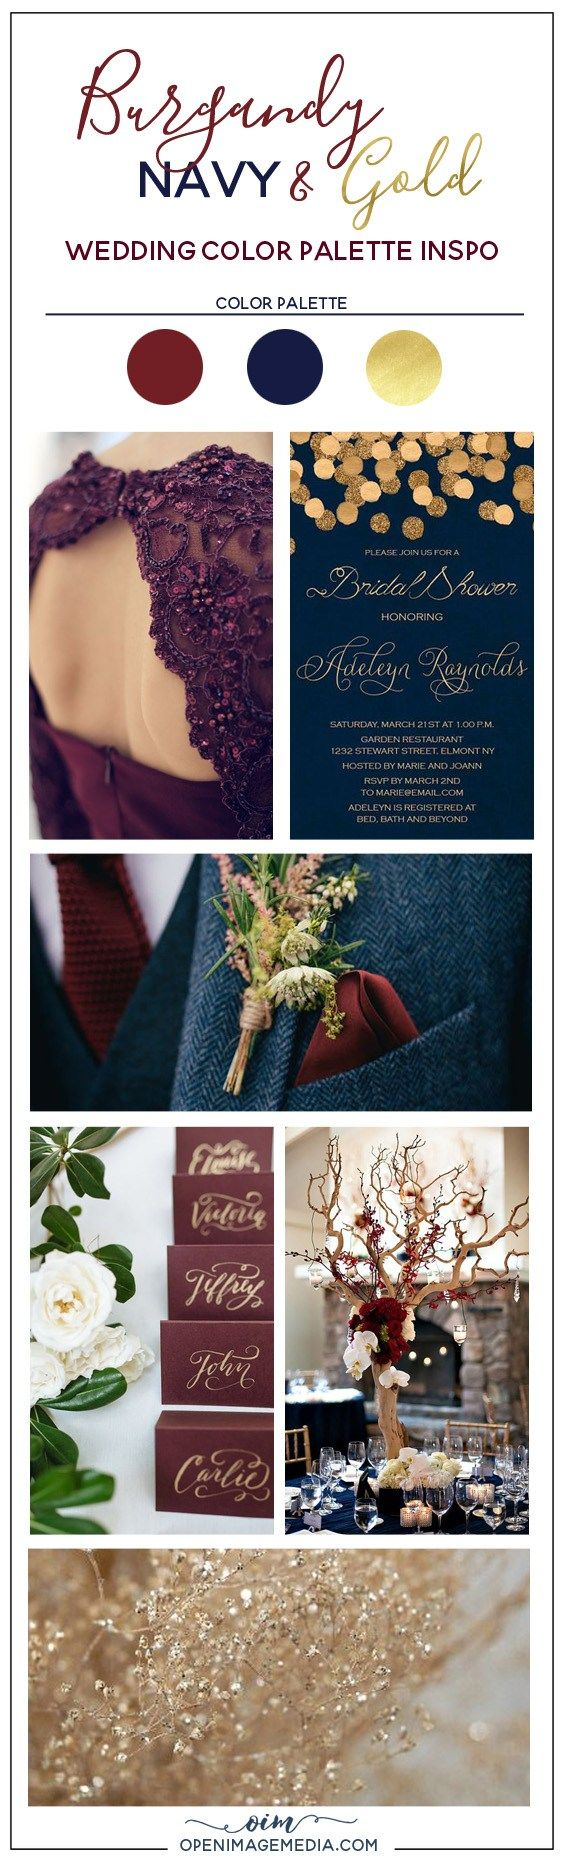 Wedding decorations lavender september 2018 Burgundy Navy and Gold Wedding Color Palette  This is NOT a wedding